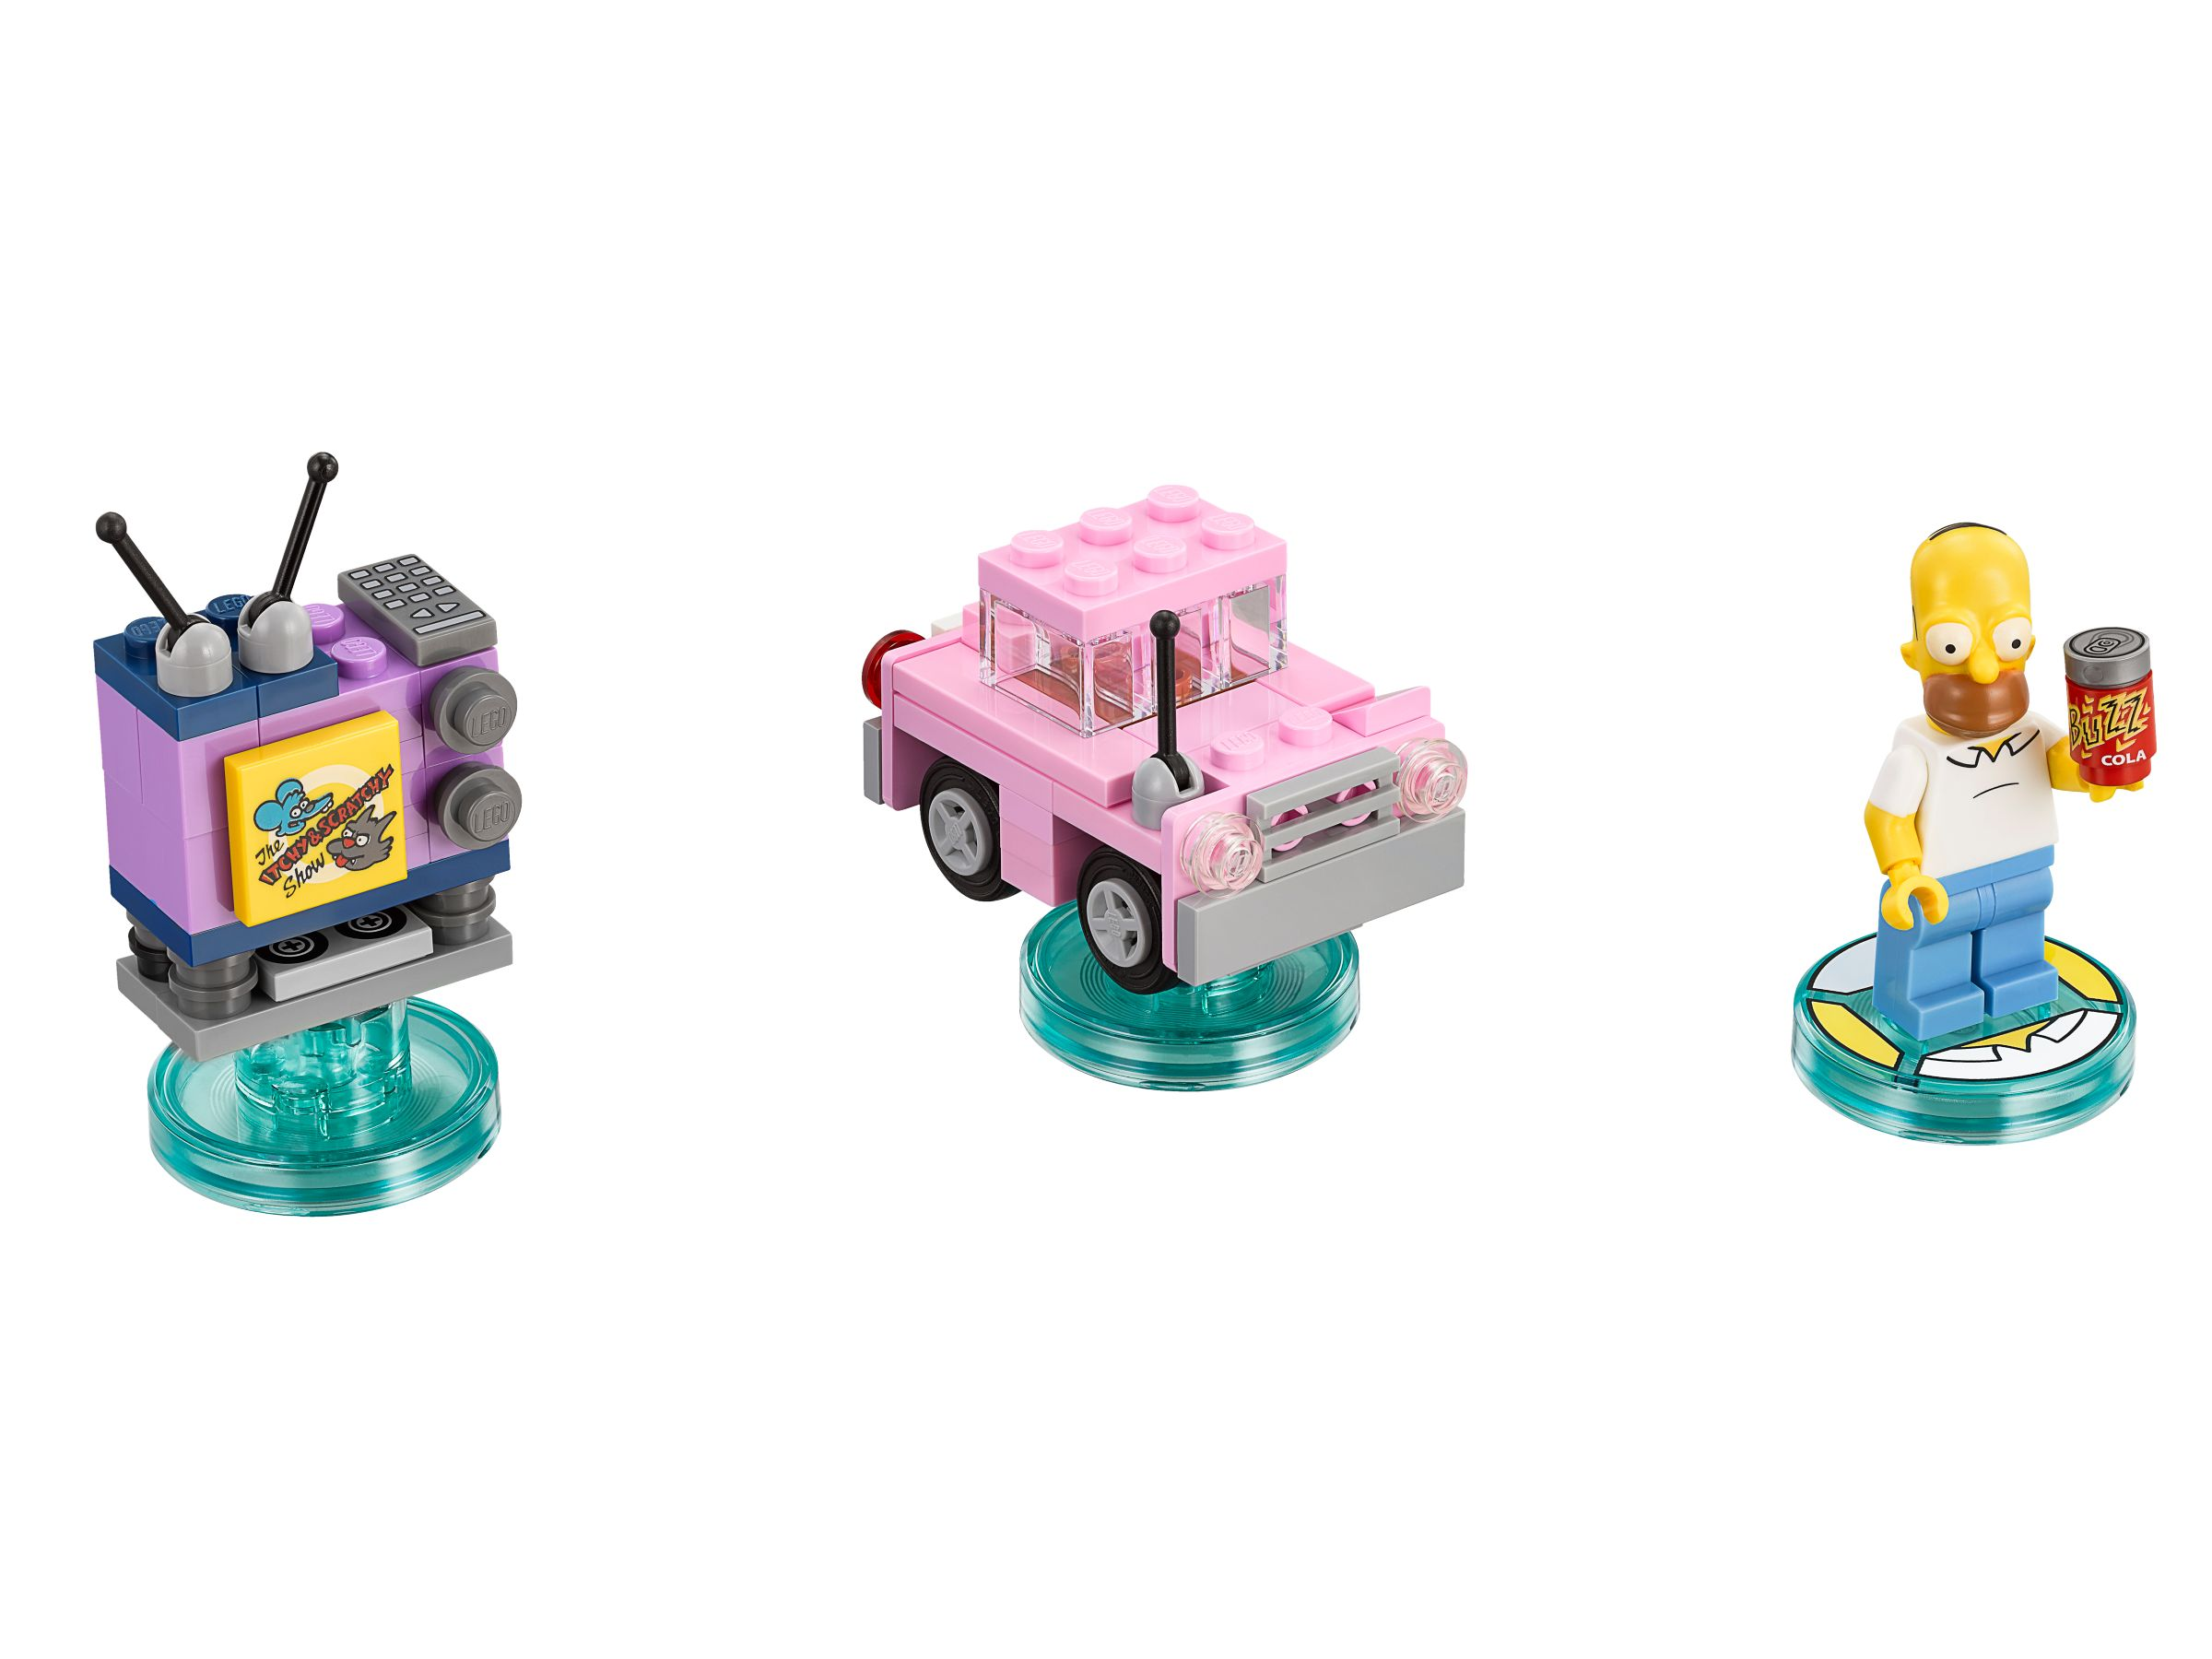 LEGO Dimensions 71202 Level Pack The Simpsons LEGO_71202.jpg